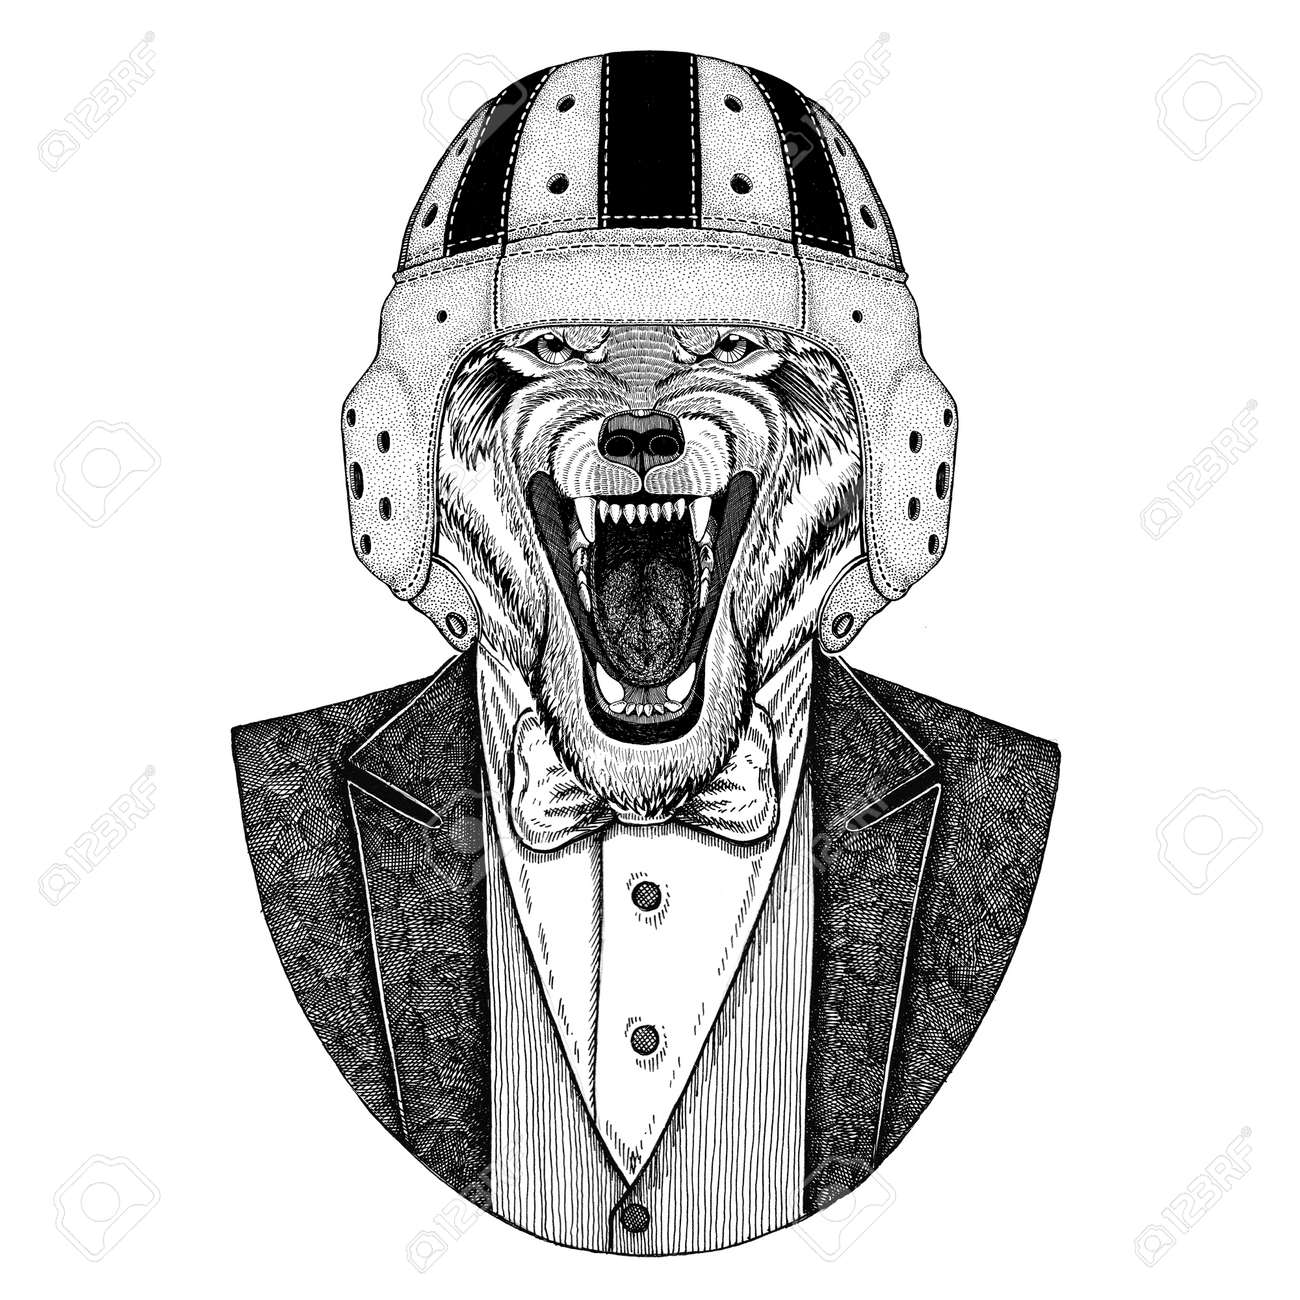 8324ec23ff5 Old school vintage rugby helmet. American football. Vintage style  illustration for tattoo, emblem, badge, logo, patch, t-shirt